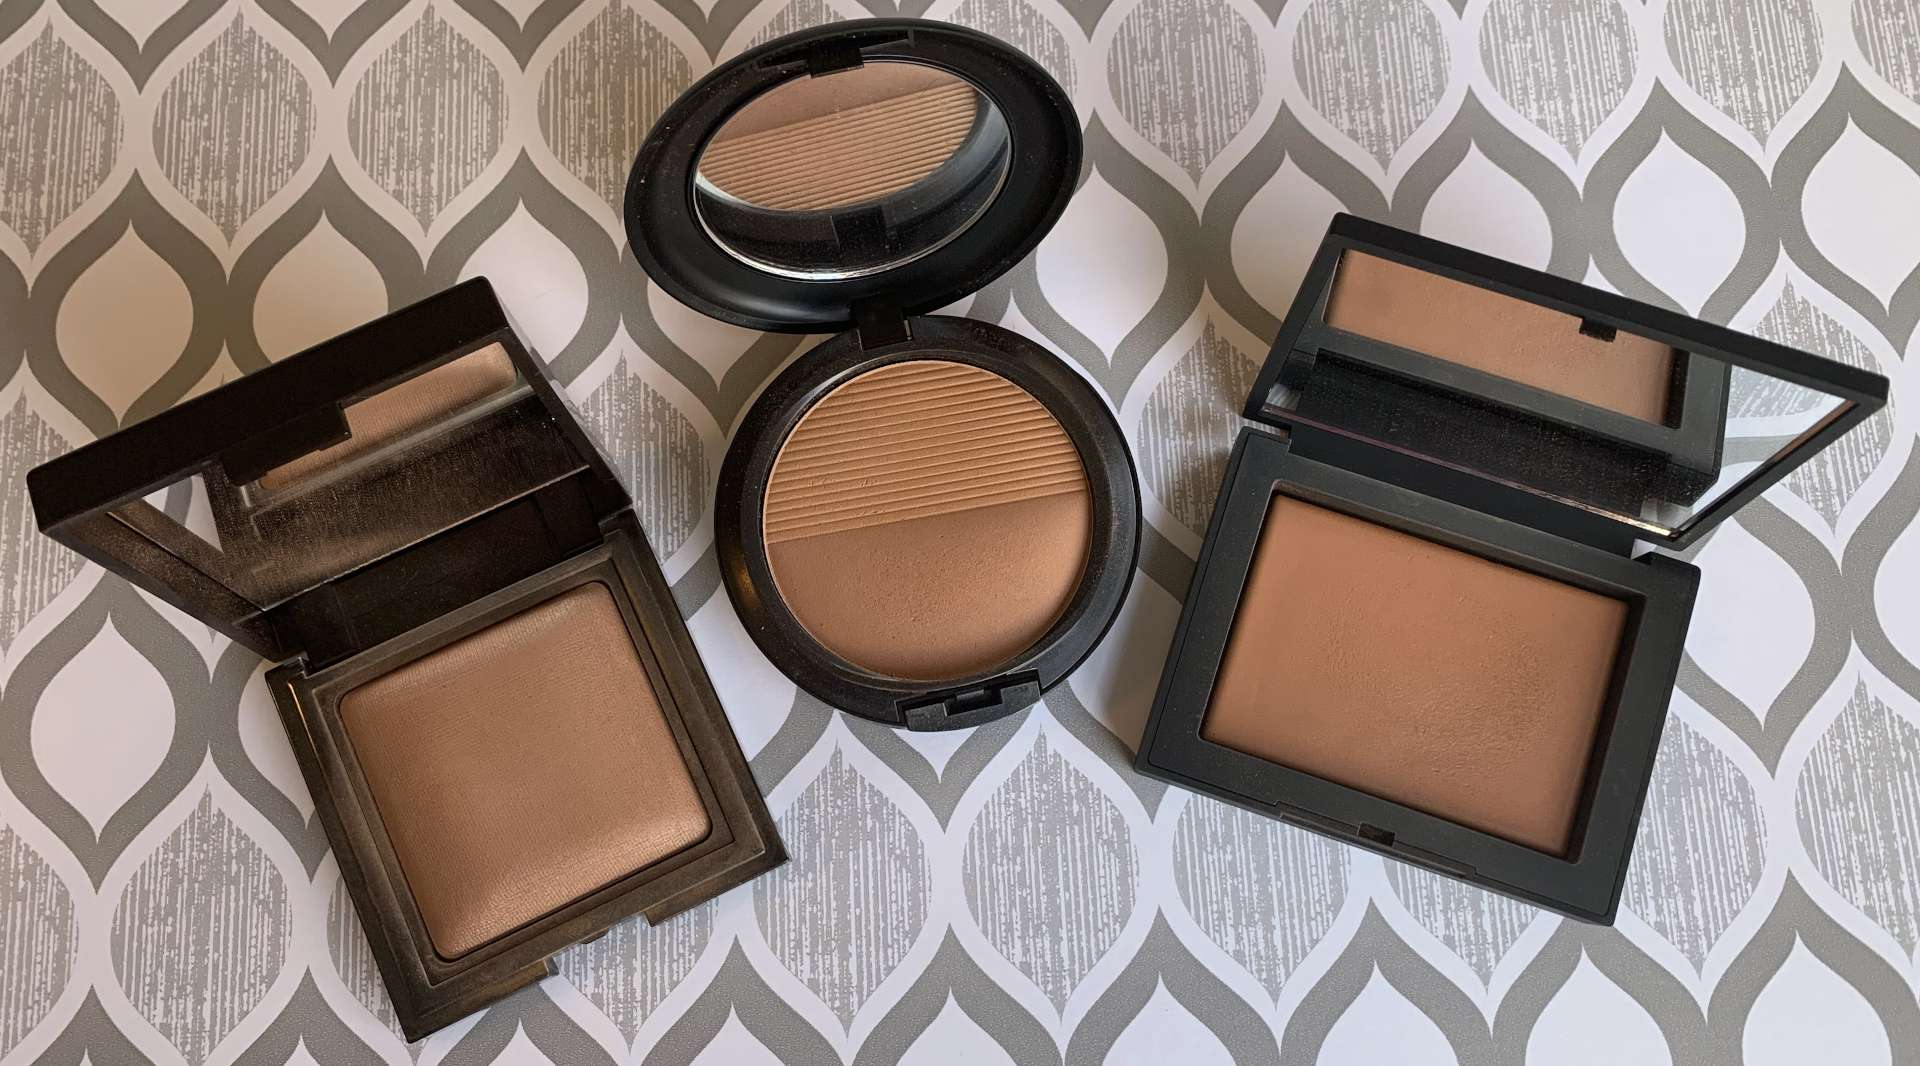 Laura Mercier Candleglow Sheer Perfecting Powder (5), MAC Studio Waterweight Pressed Powder (dark), and NARS Light Reflecting Pressed Setting Powder (sunstone)